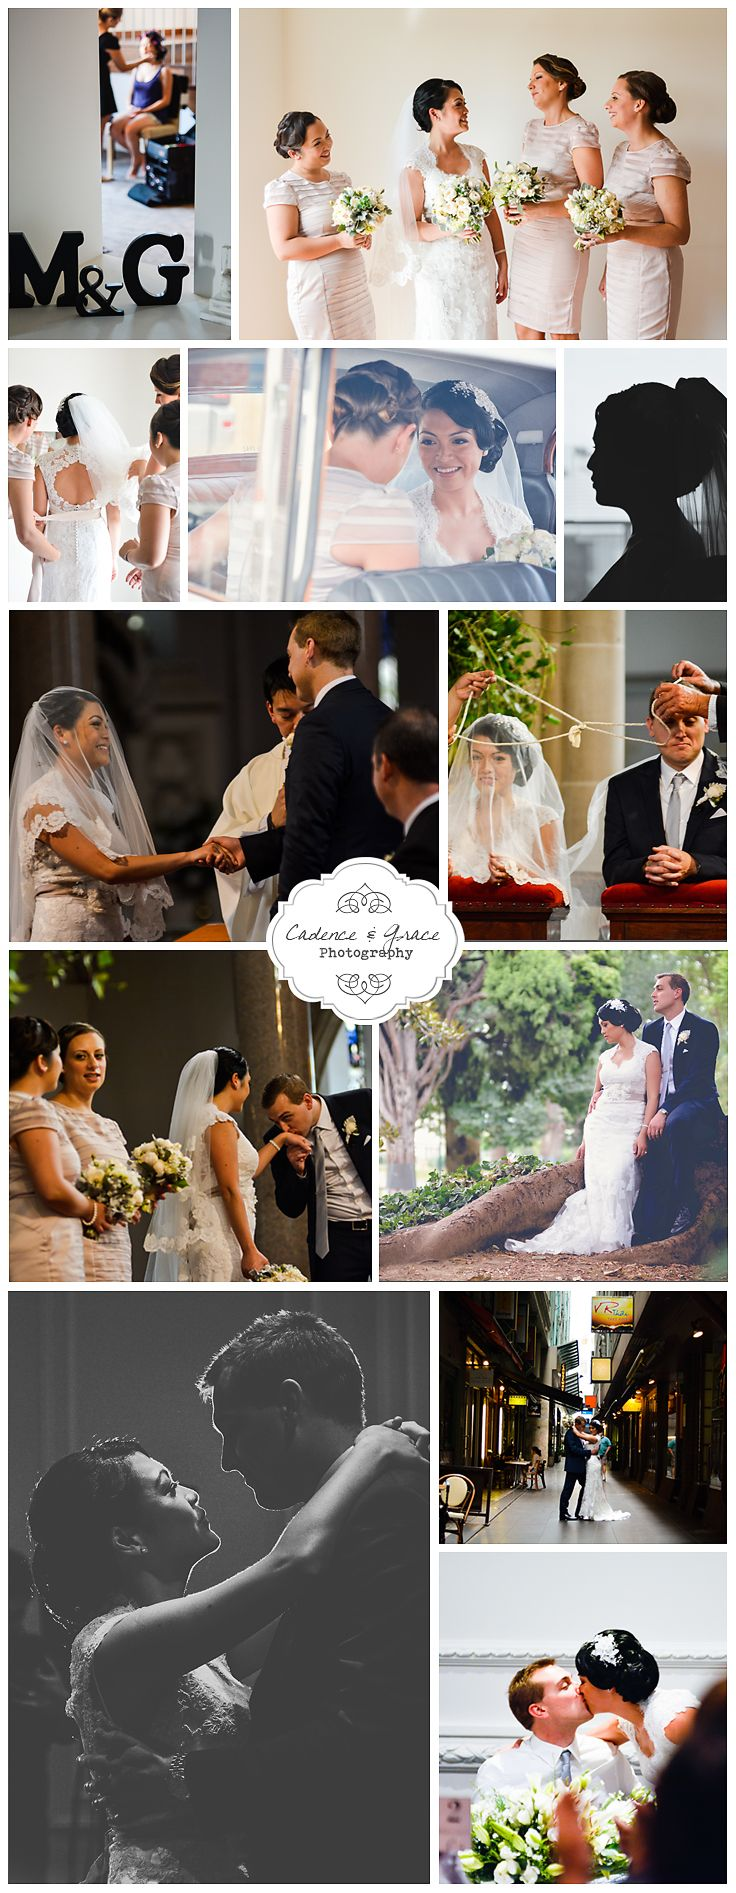 A collection of images from Mon & Greg's beautiful Melbourne wedding